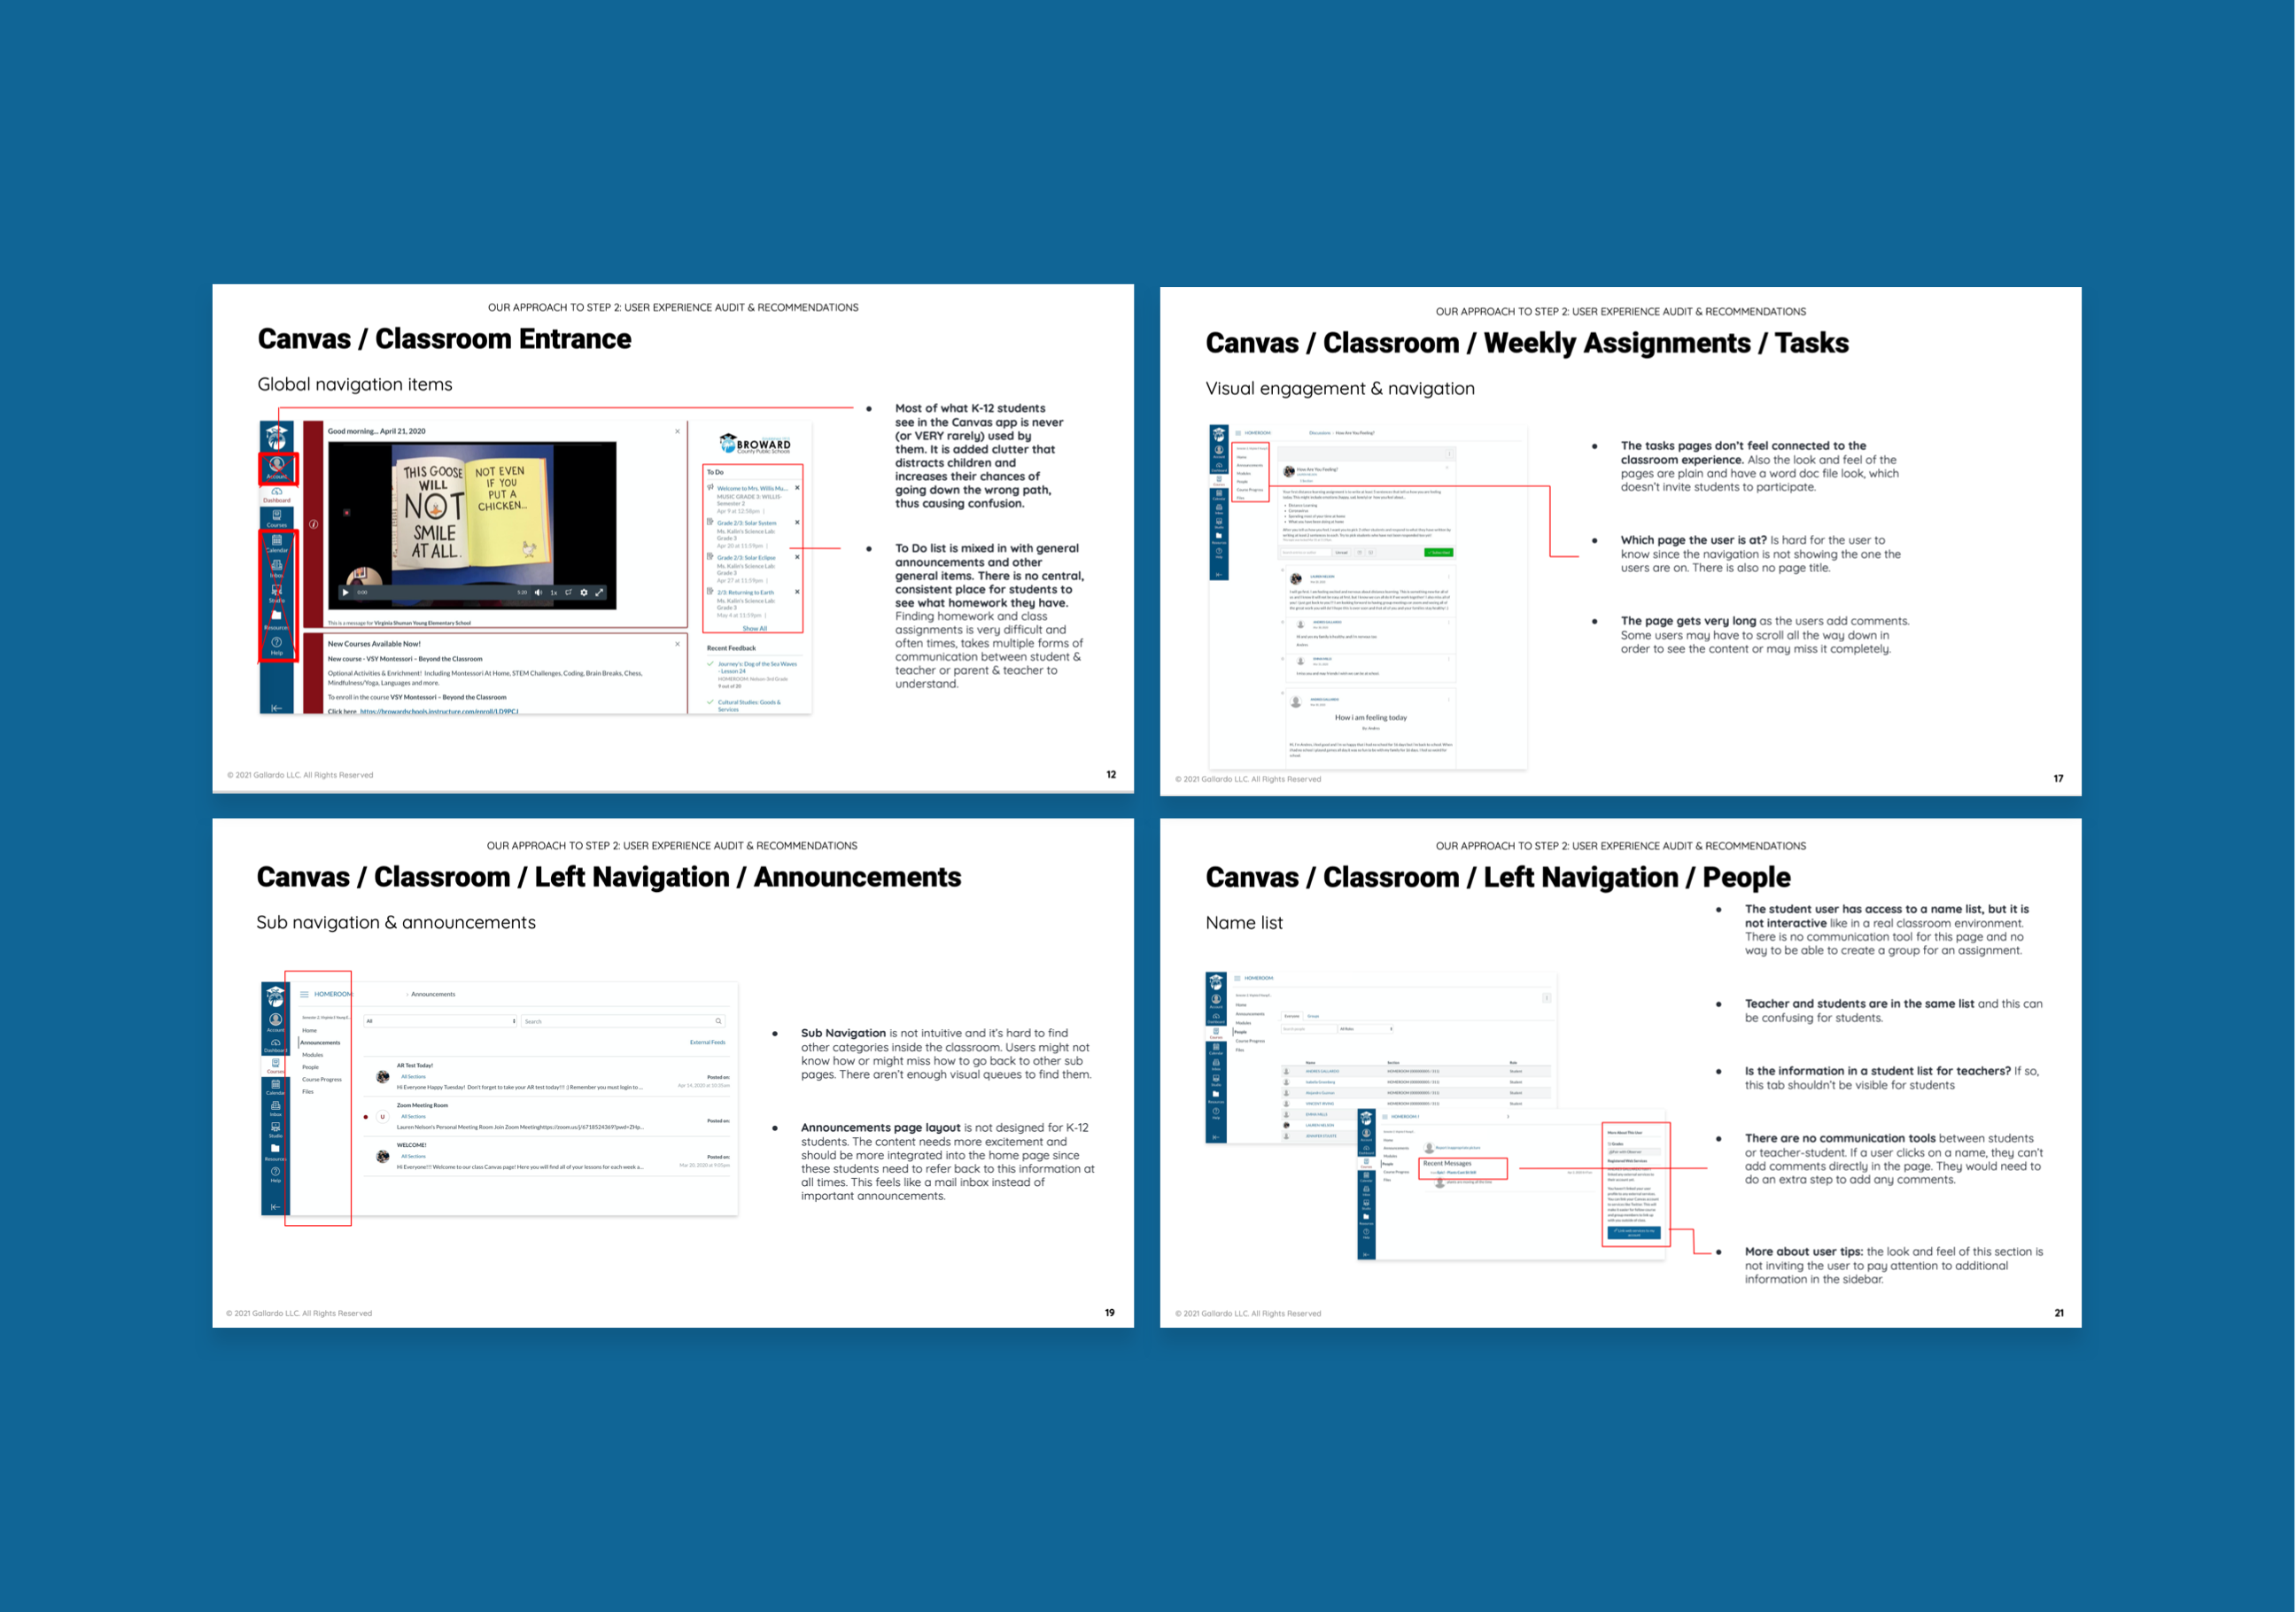 Screens from the analysis done for Canvas.